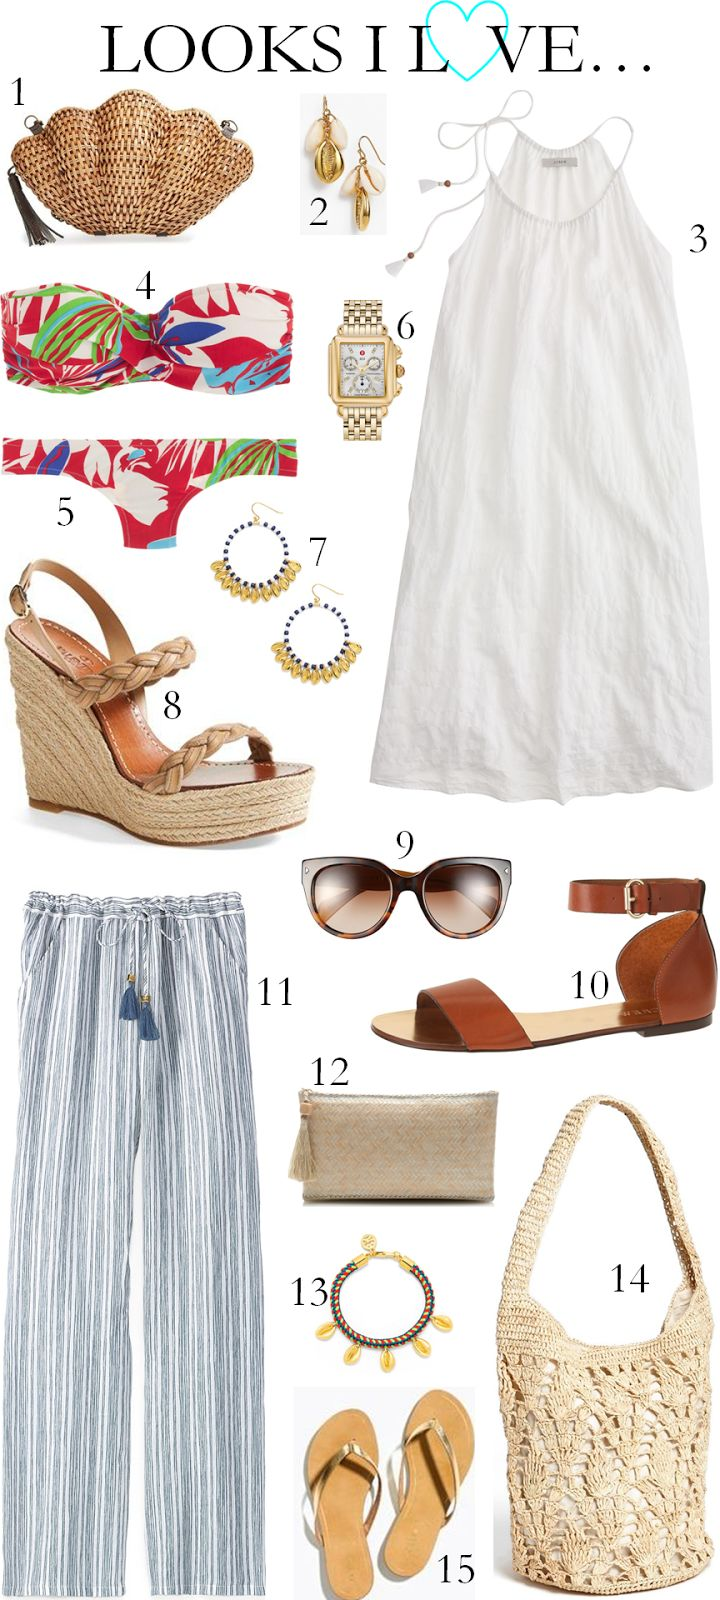 CHIC COASTAL LIVING: LOOKS I LOVE // RESORT EDITION @nordstrom #nordstrom @ToryBurch #toryburch #jcrew